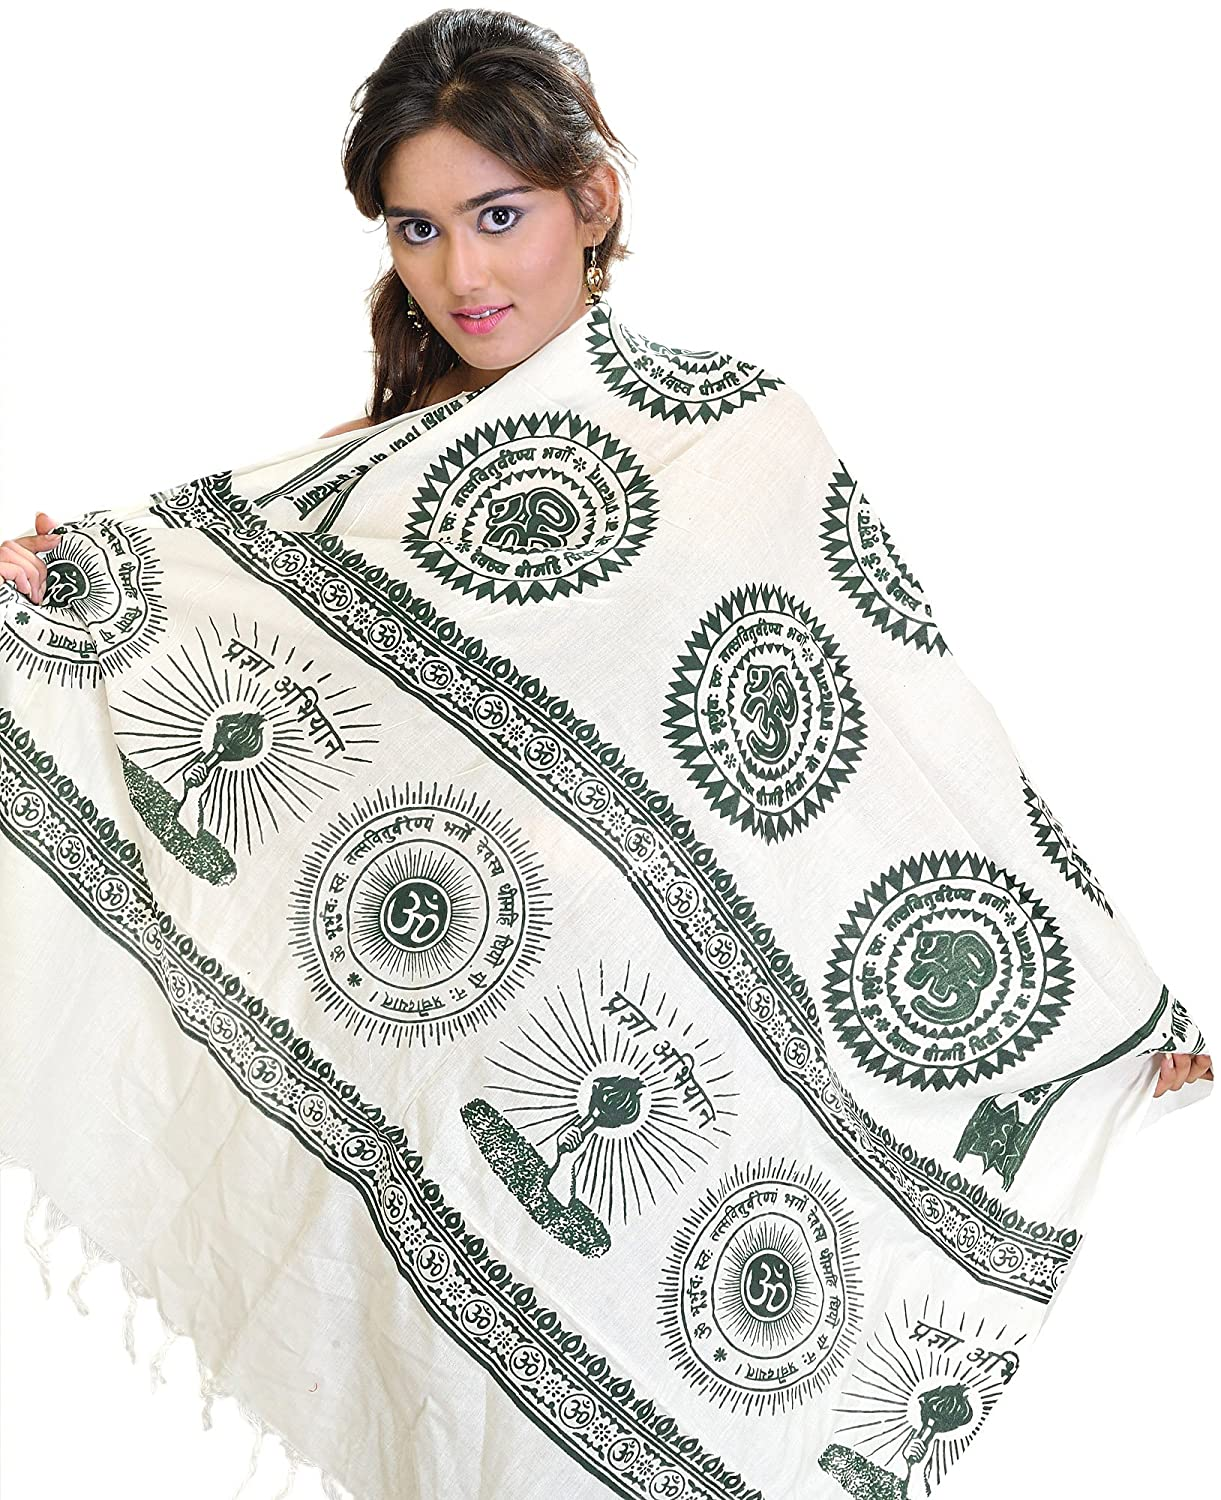 Exotic India Ivory and Green Gayatri Mantra Prayer Shawl - White SRB91